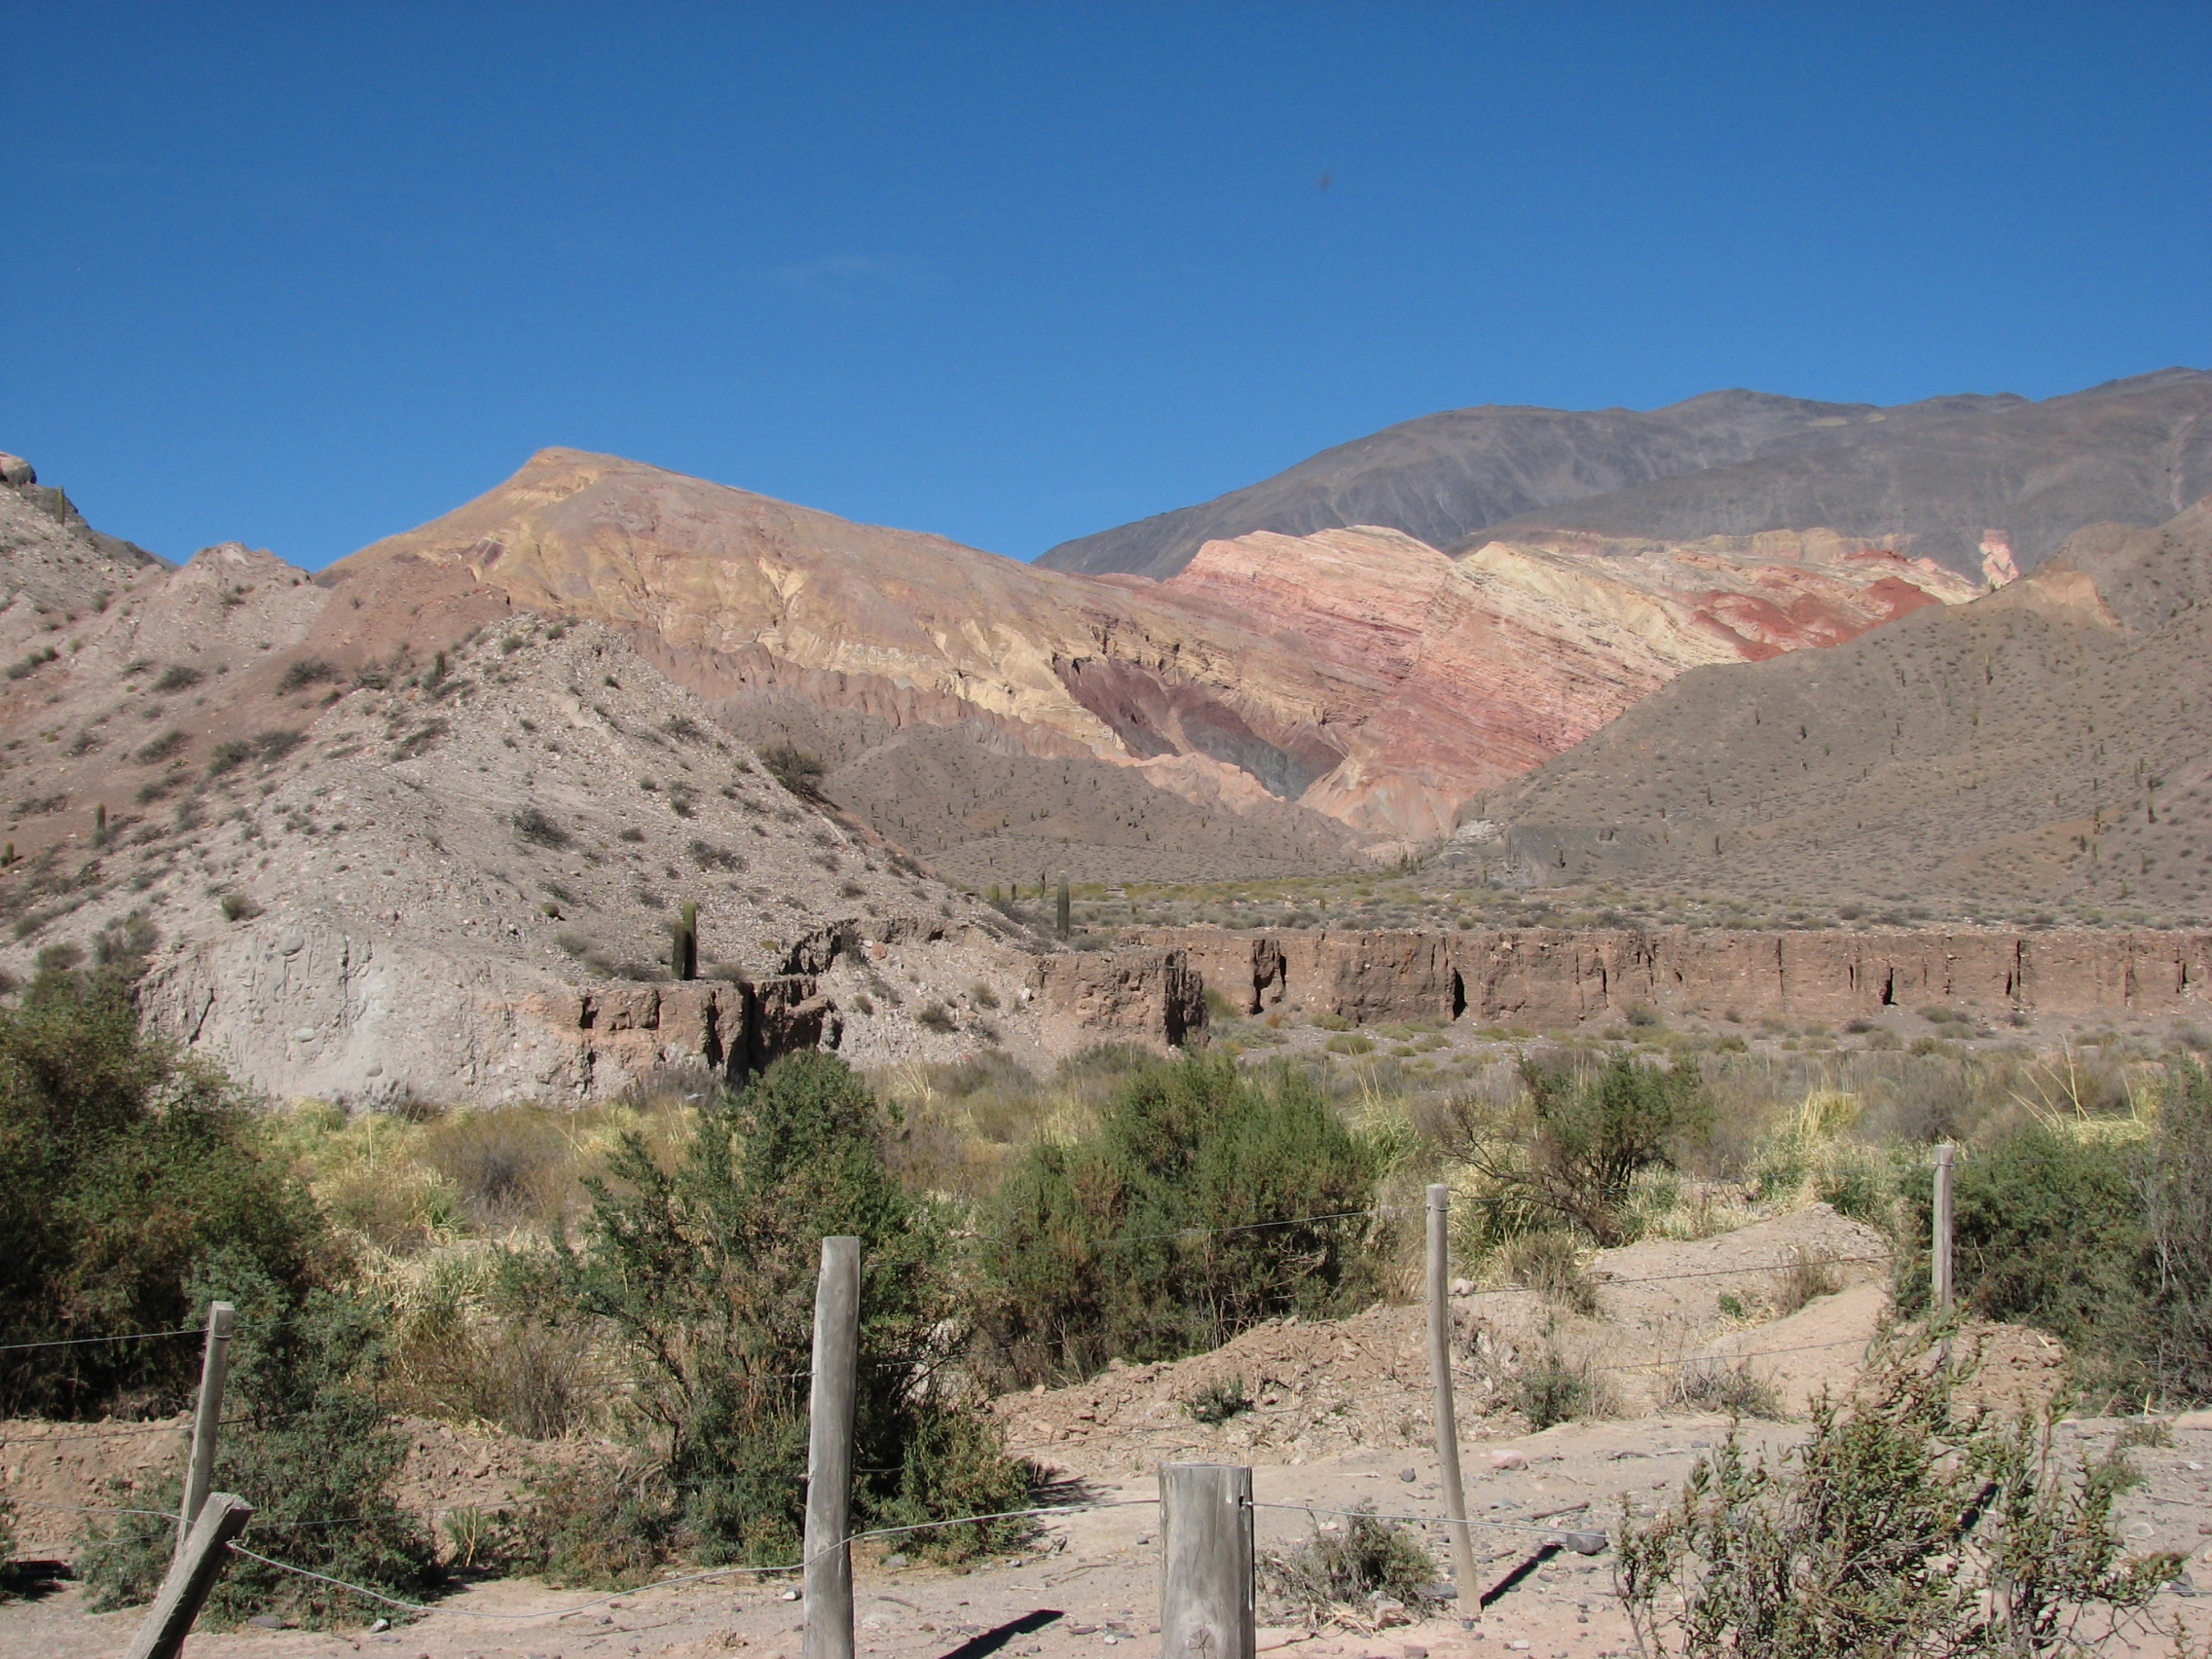 Andes-2008-0040